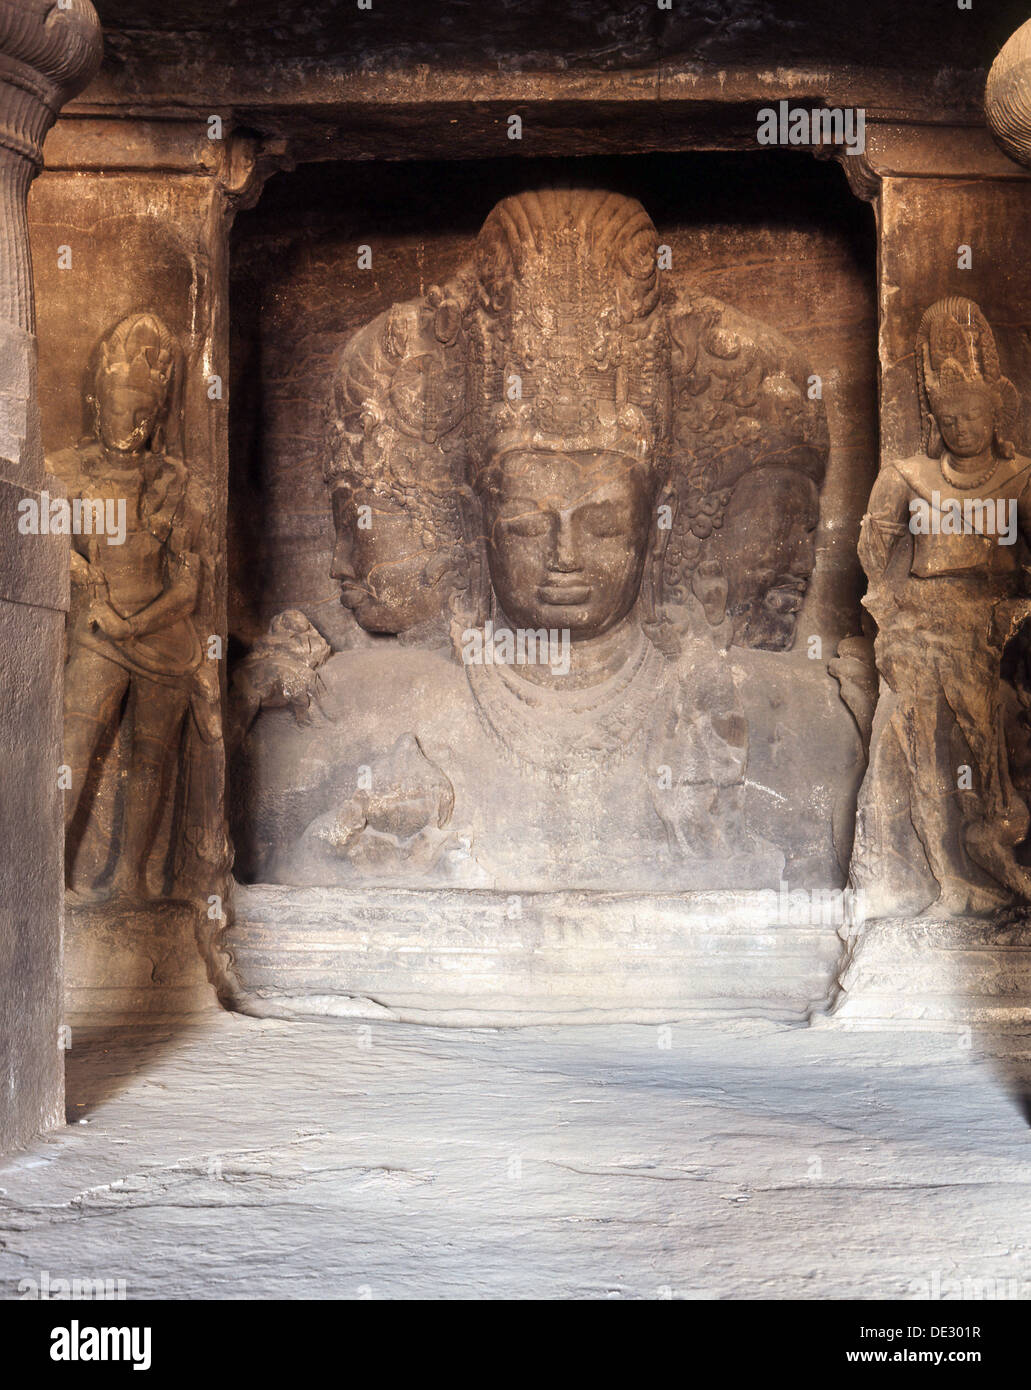 The Trimurti at the Temple of Shiva, Elephanta. - Stock Image